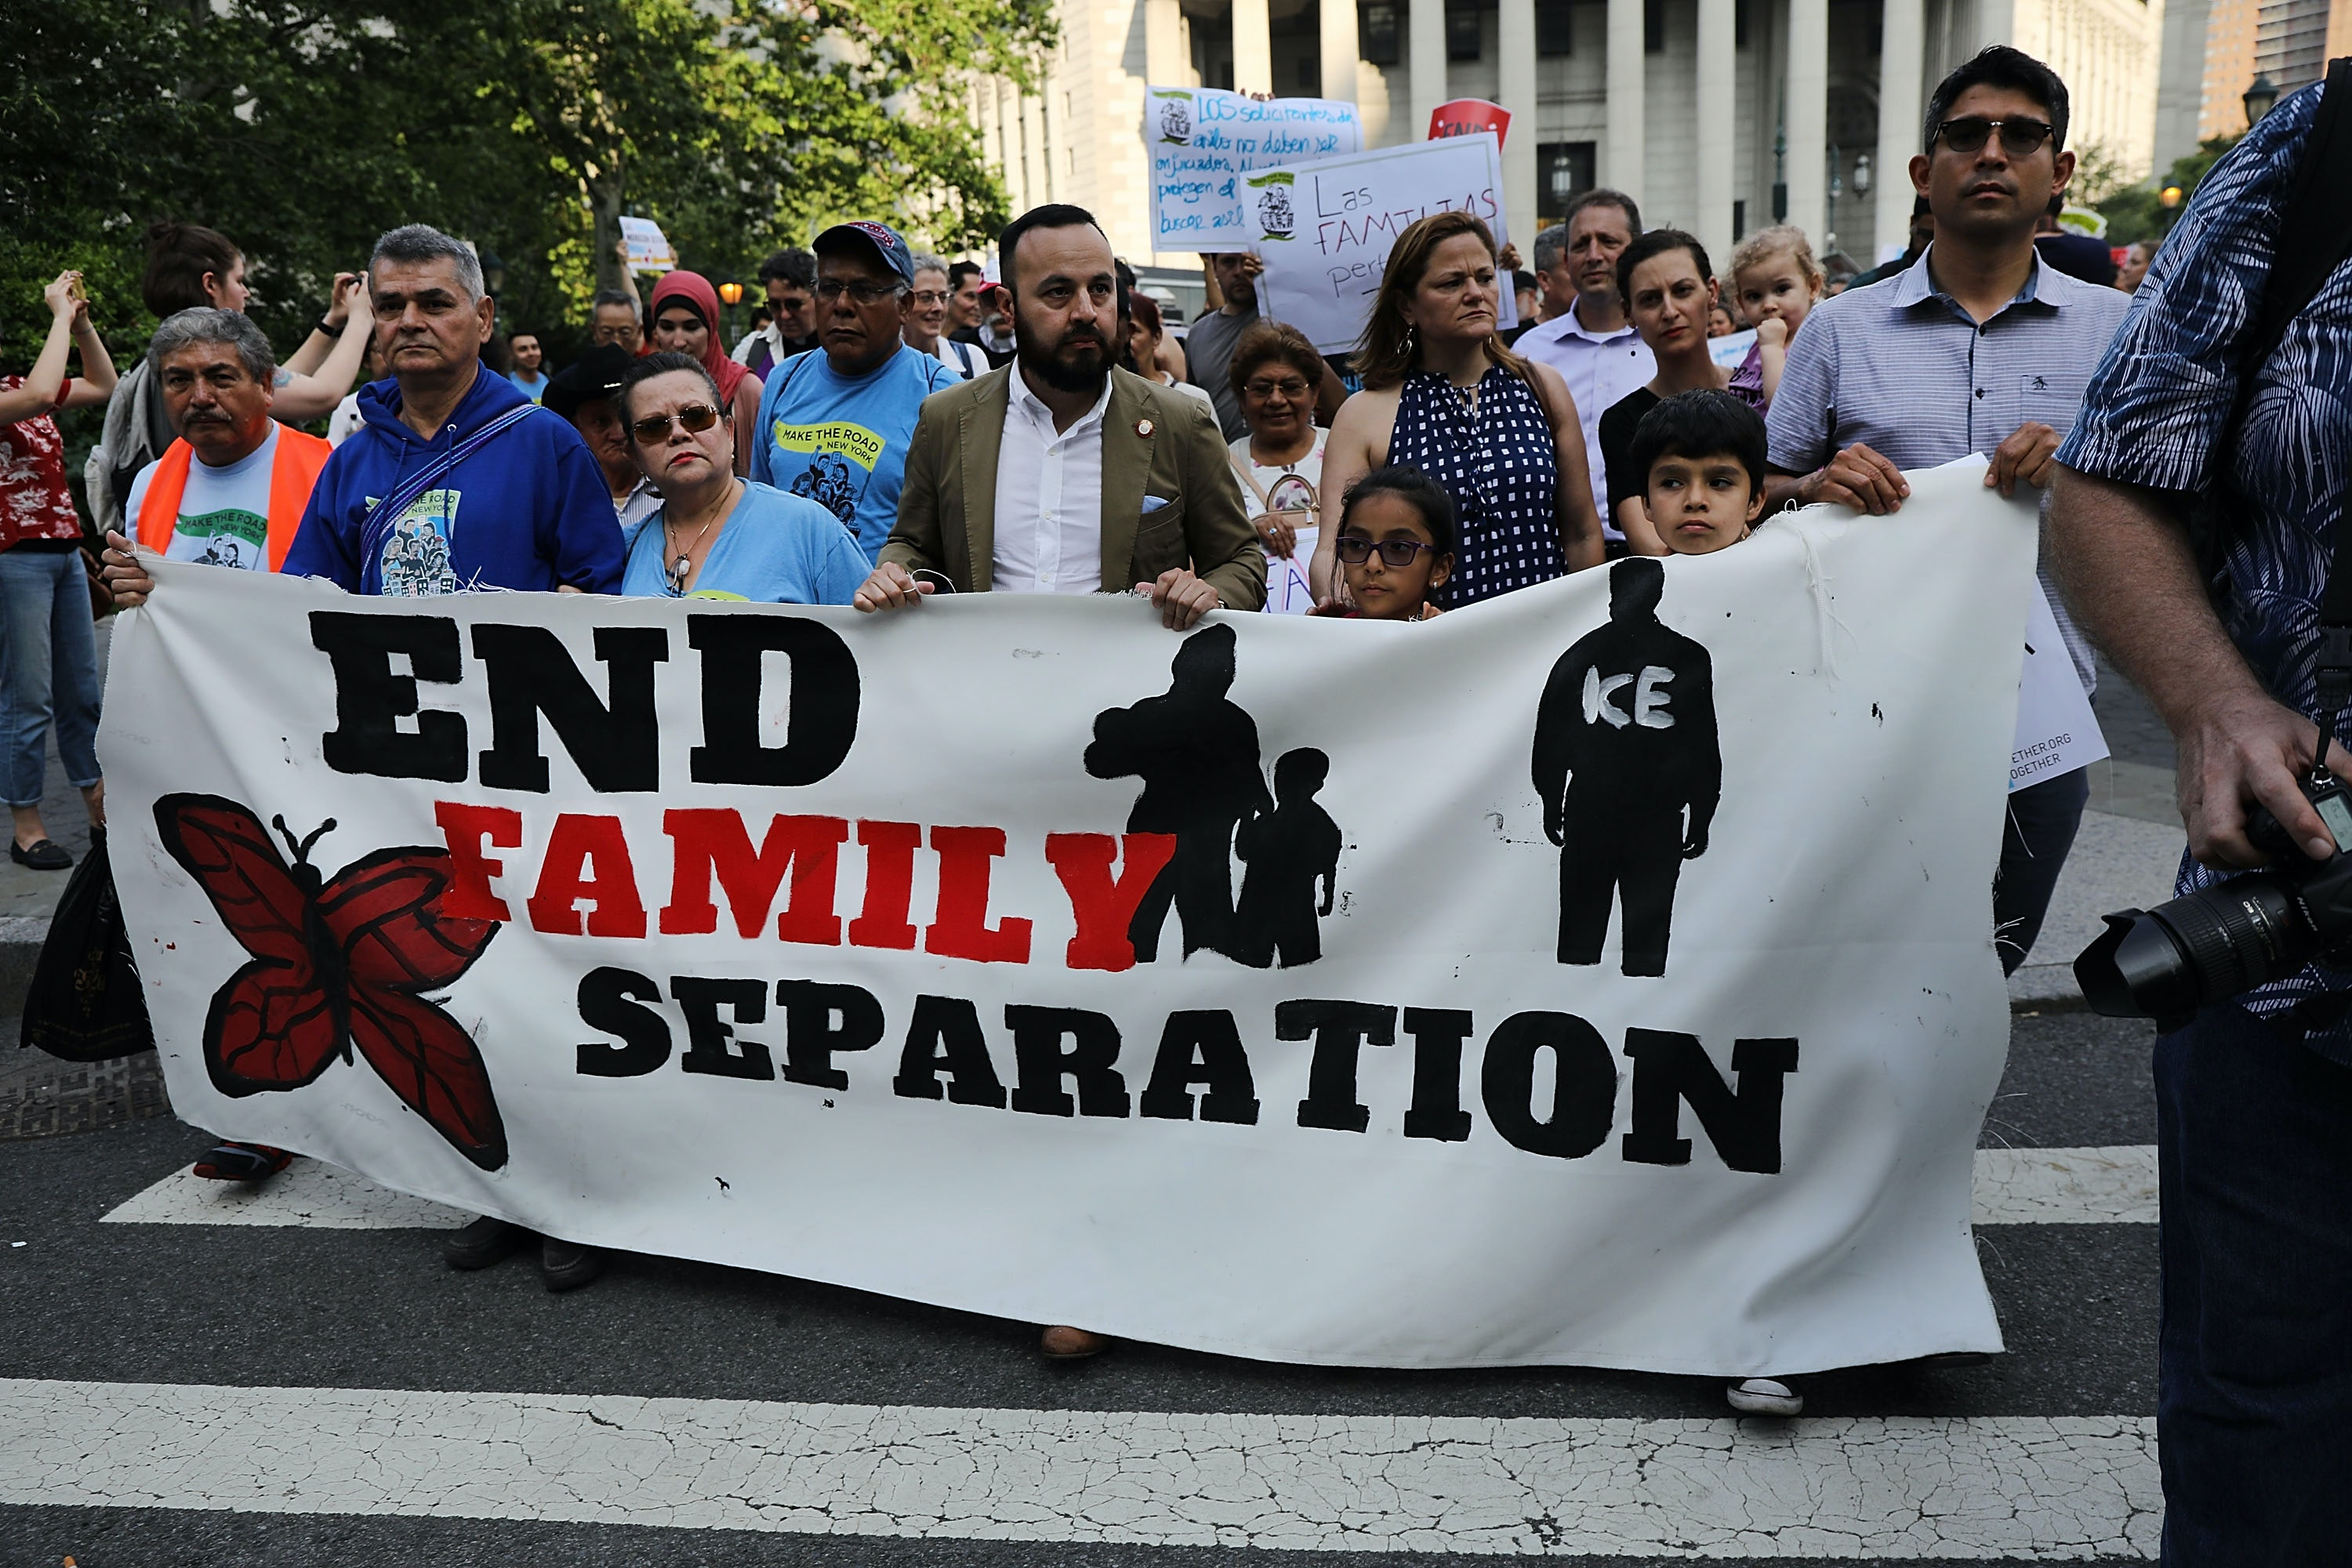 12 Immigrant Advocacy Organizations To Donate To If You Can